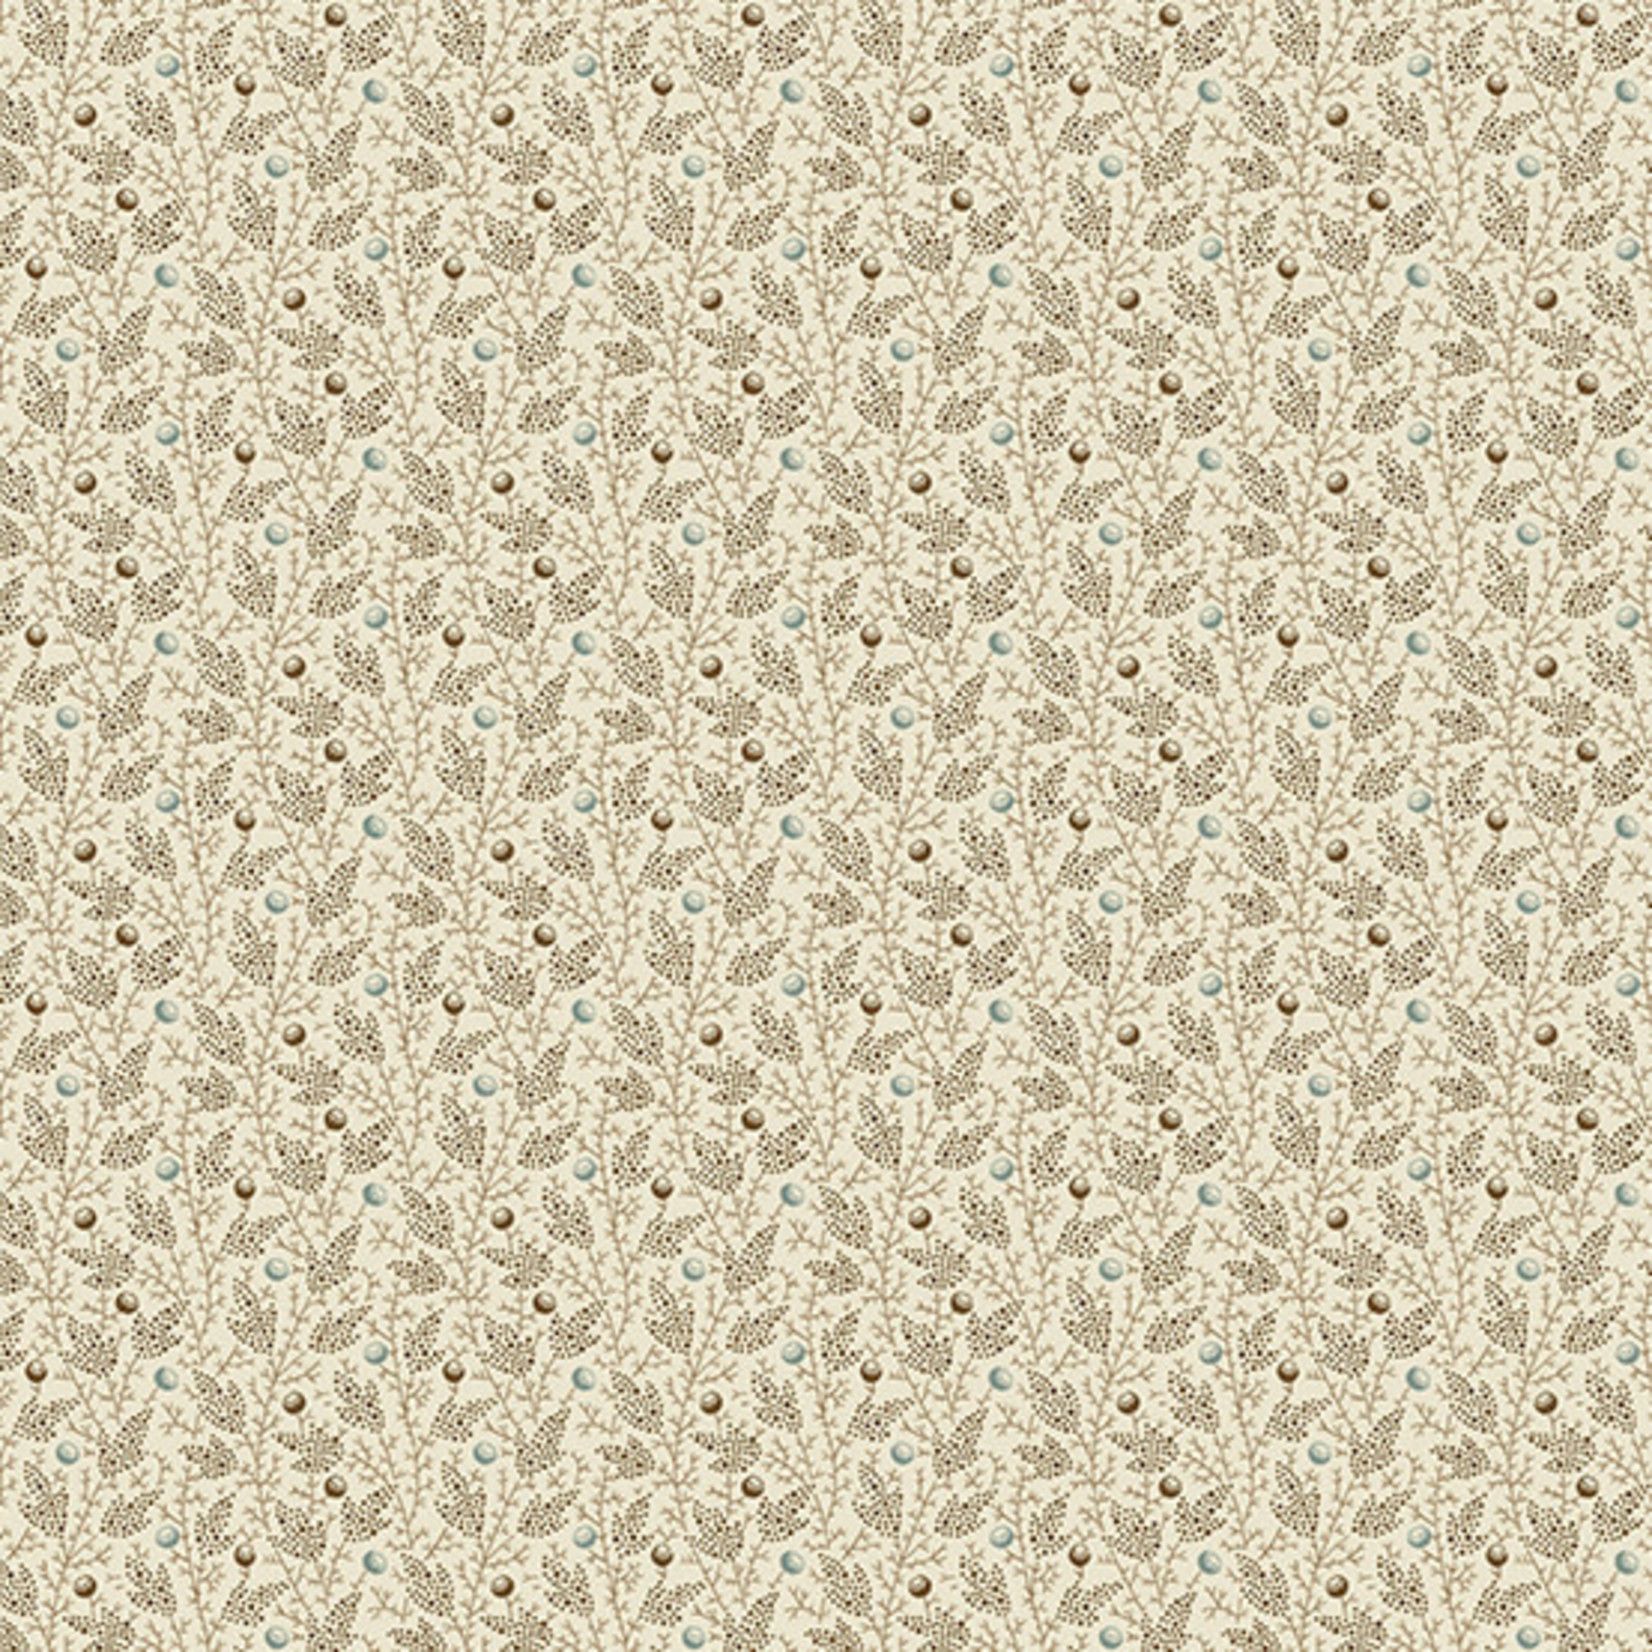 Edyta Sitar Secret Stash - Neutrals, Ivy, Tan (9461-N) $0.20 per cm or $20/m